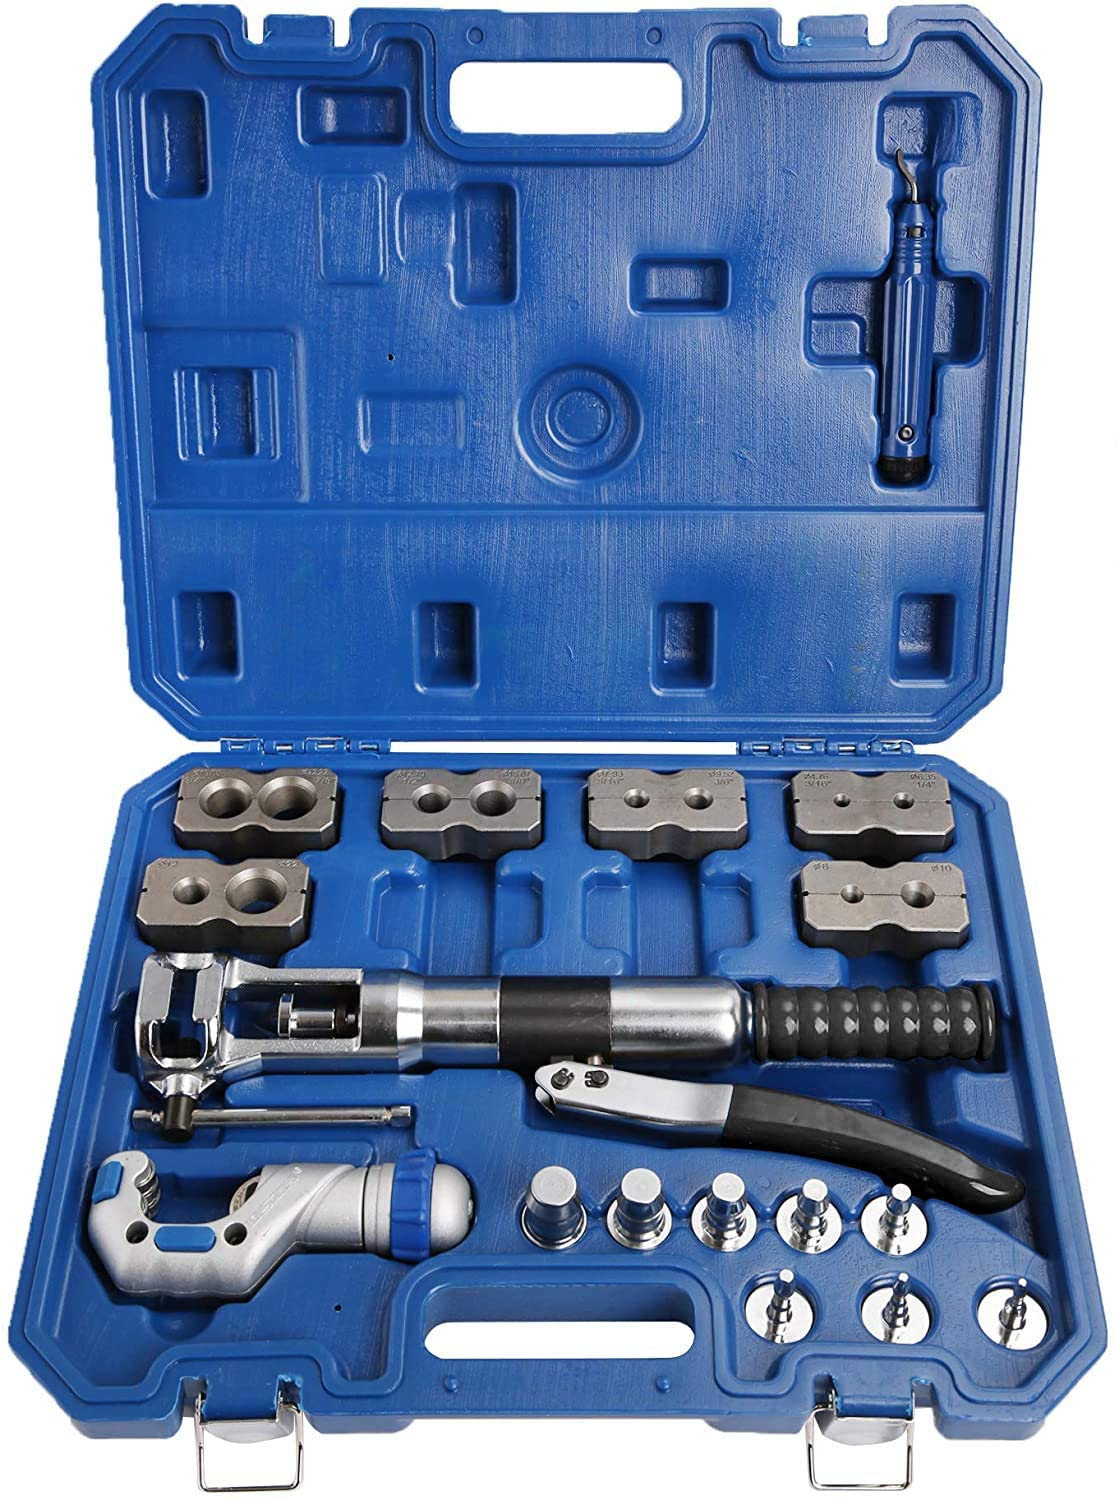 Mophorn Hydraulic Flaring Tool Kit with Tube Cutter Flare Tool Kit Deburrer Fuel Line 8PCS Swage Adapter Brake Flaring Tool Kit